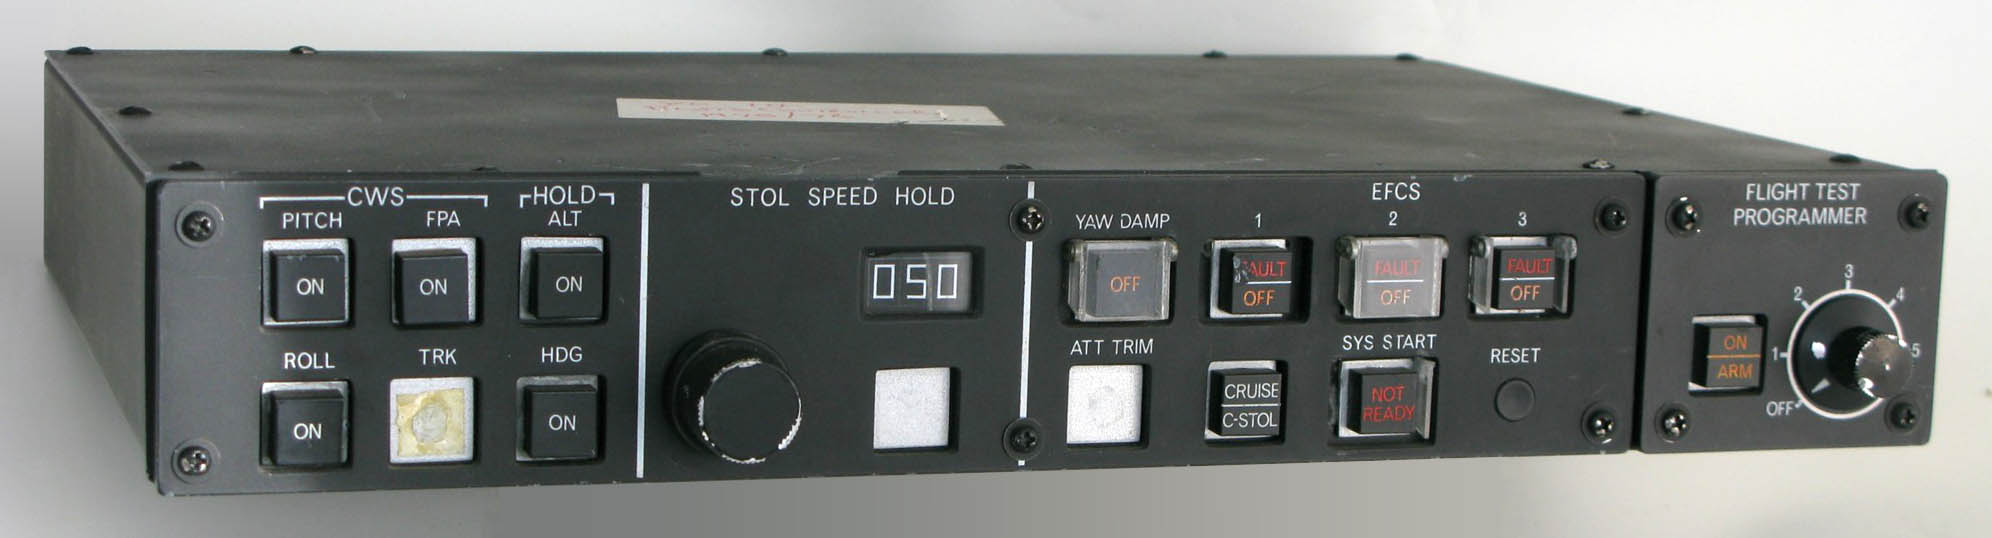 YC-14 FCS Control & Display Panel (space model)